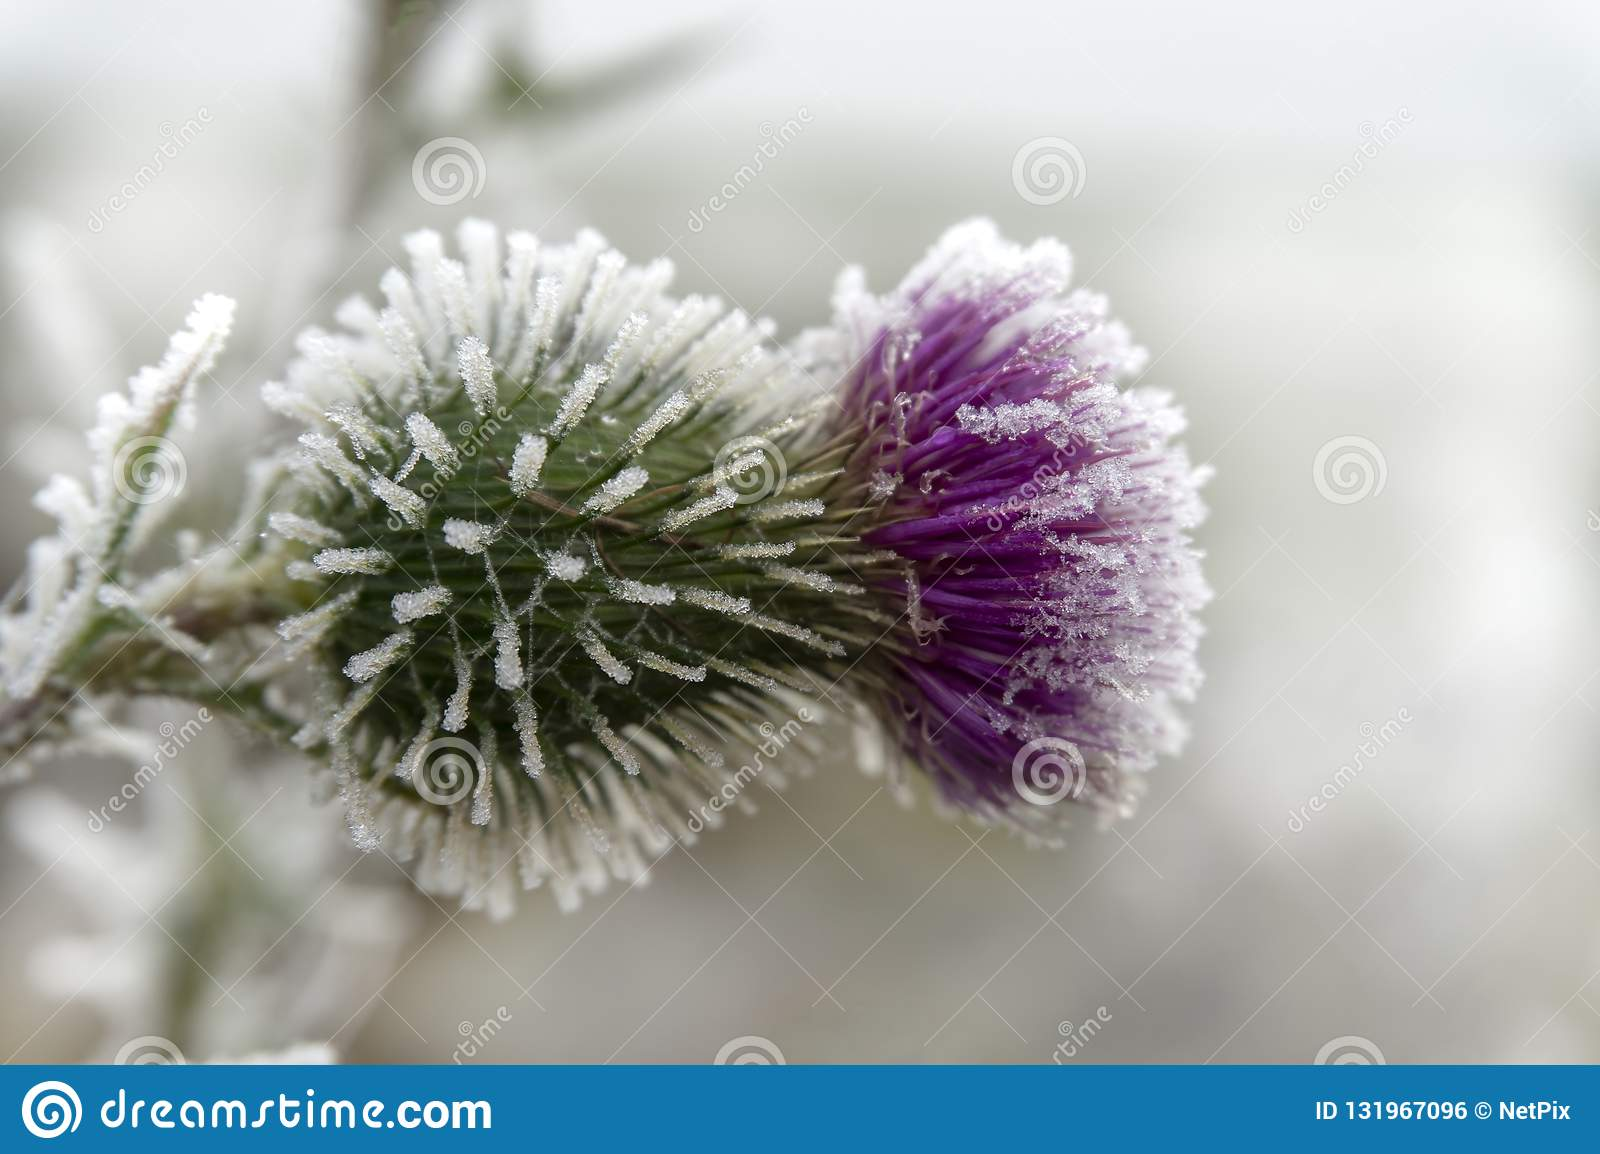 Frost covered purple thistle flower in winter